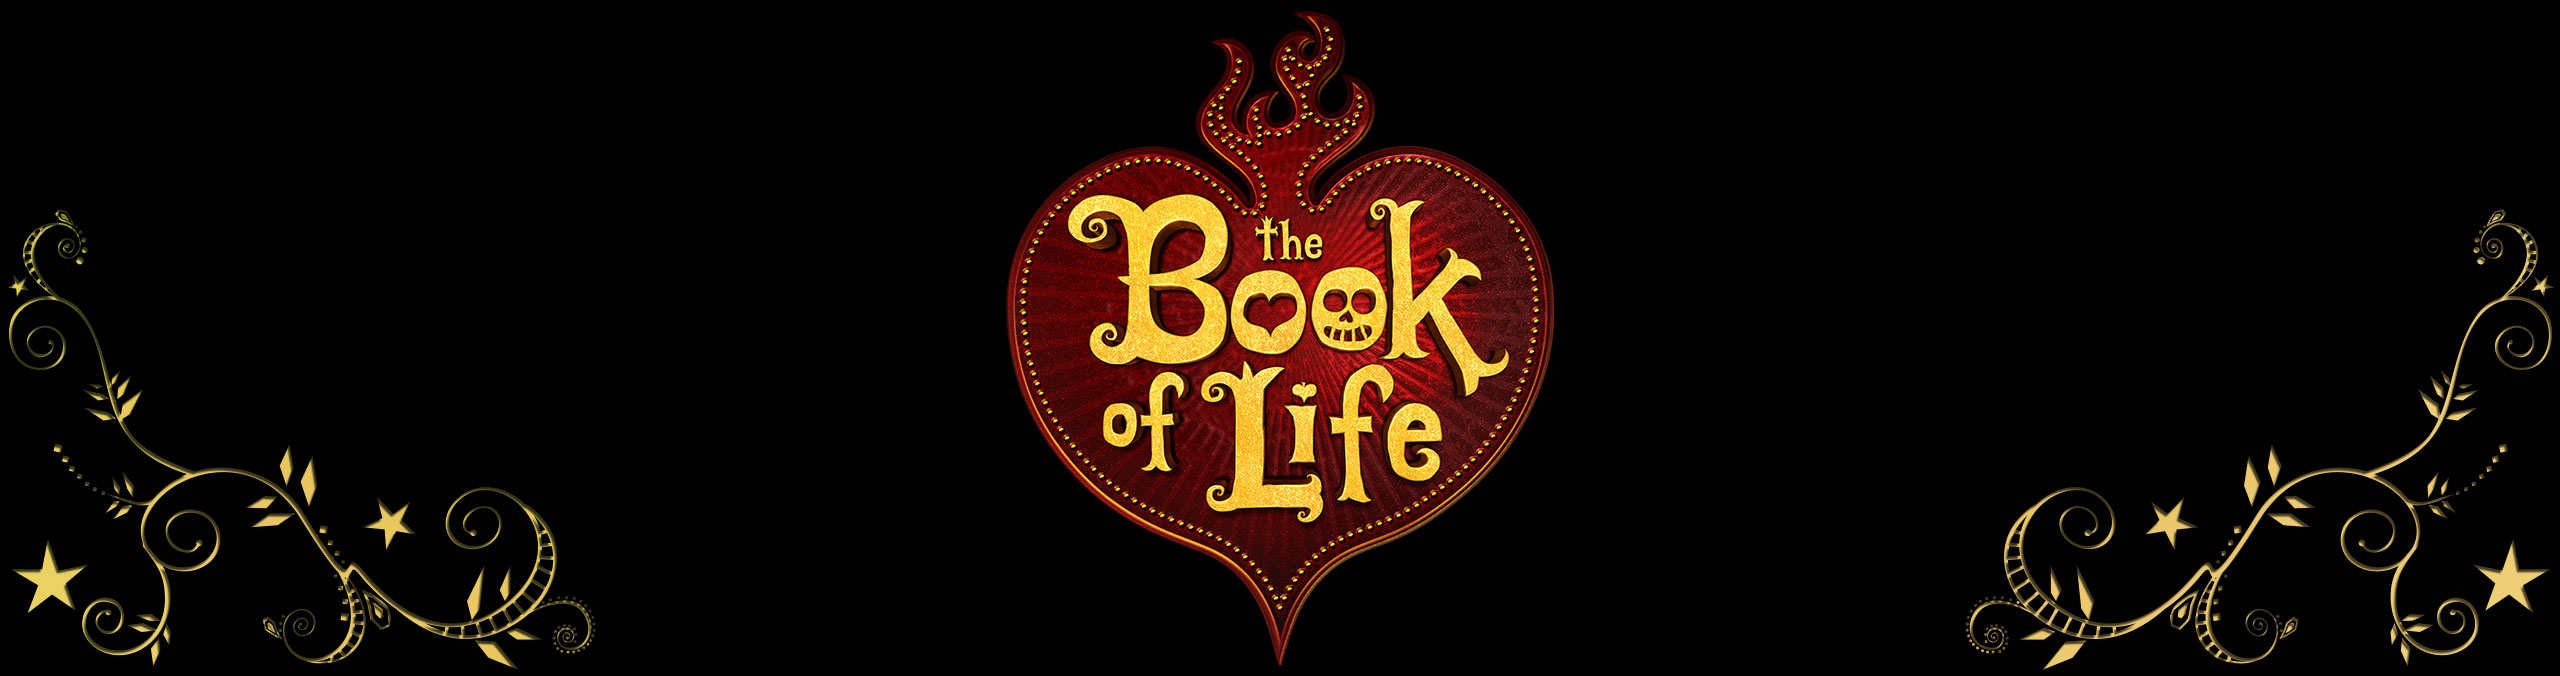 The Book of Life Logo